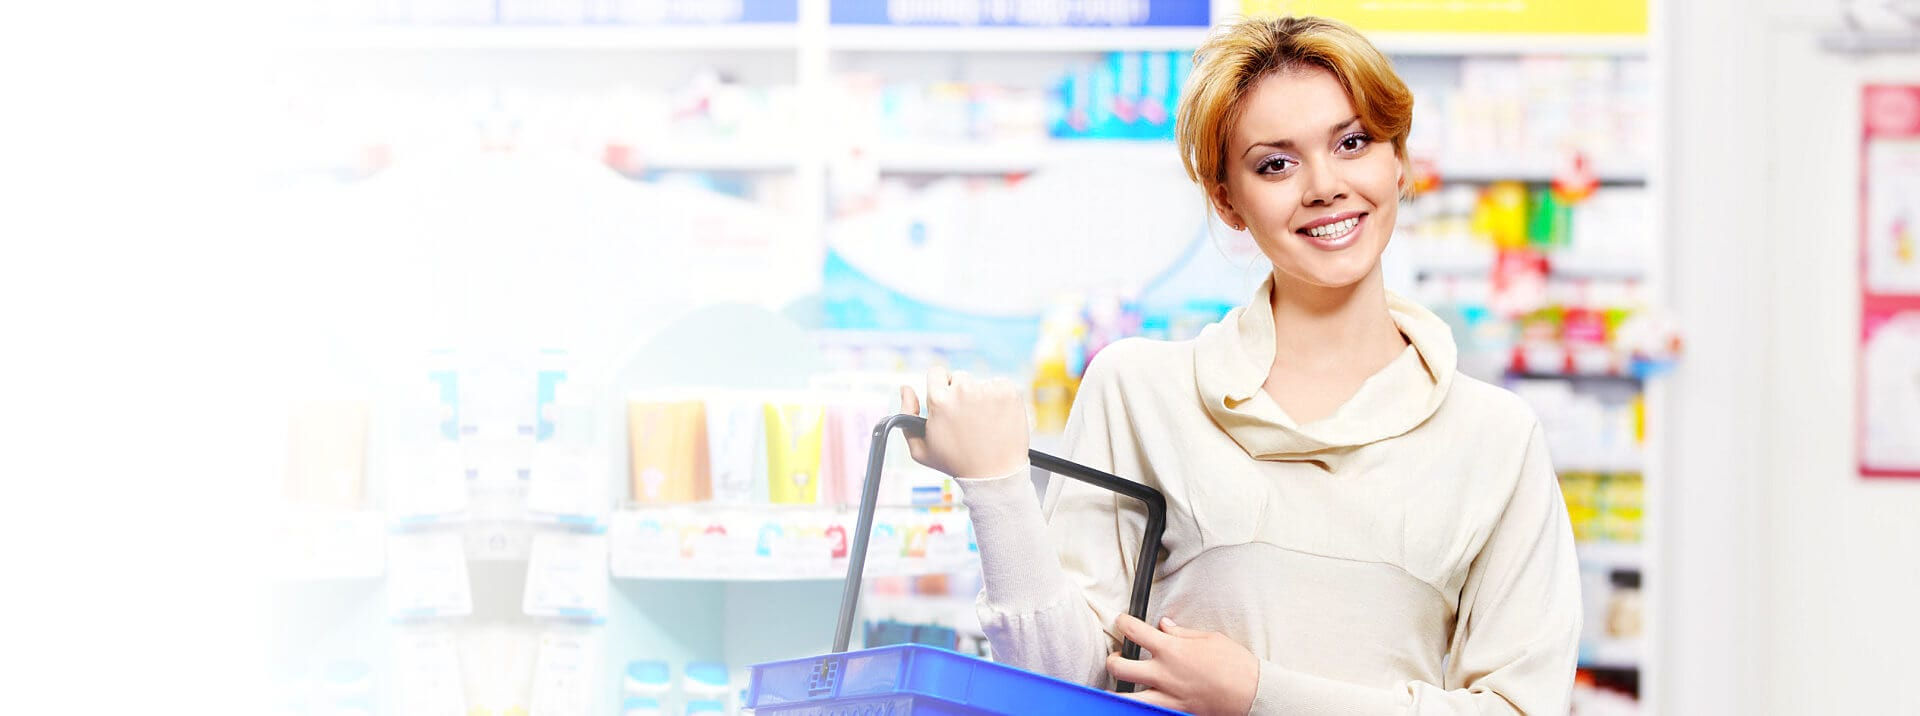 woman smiling at pharmacy